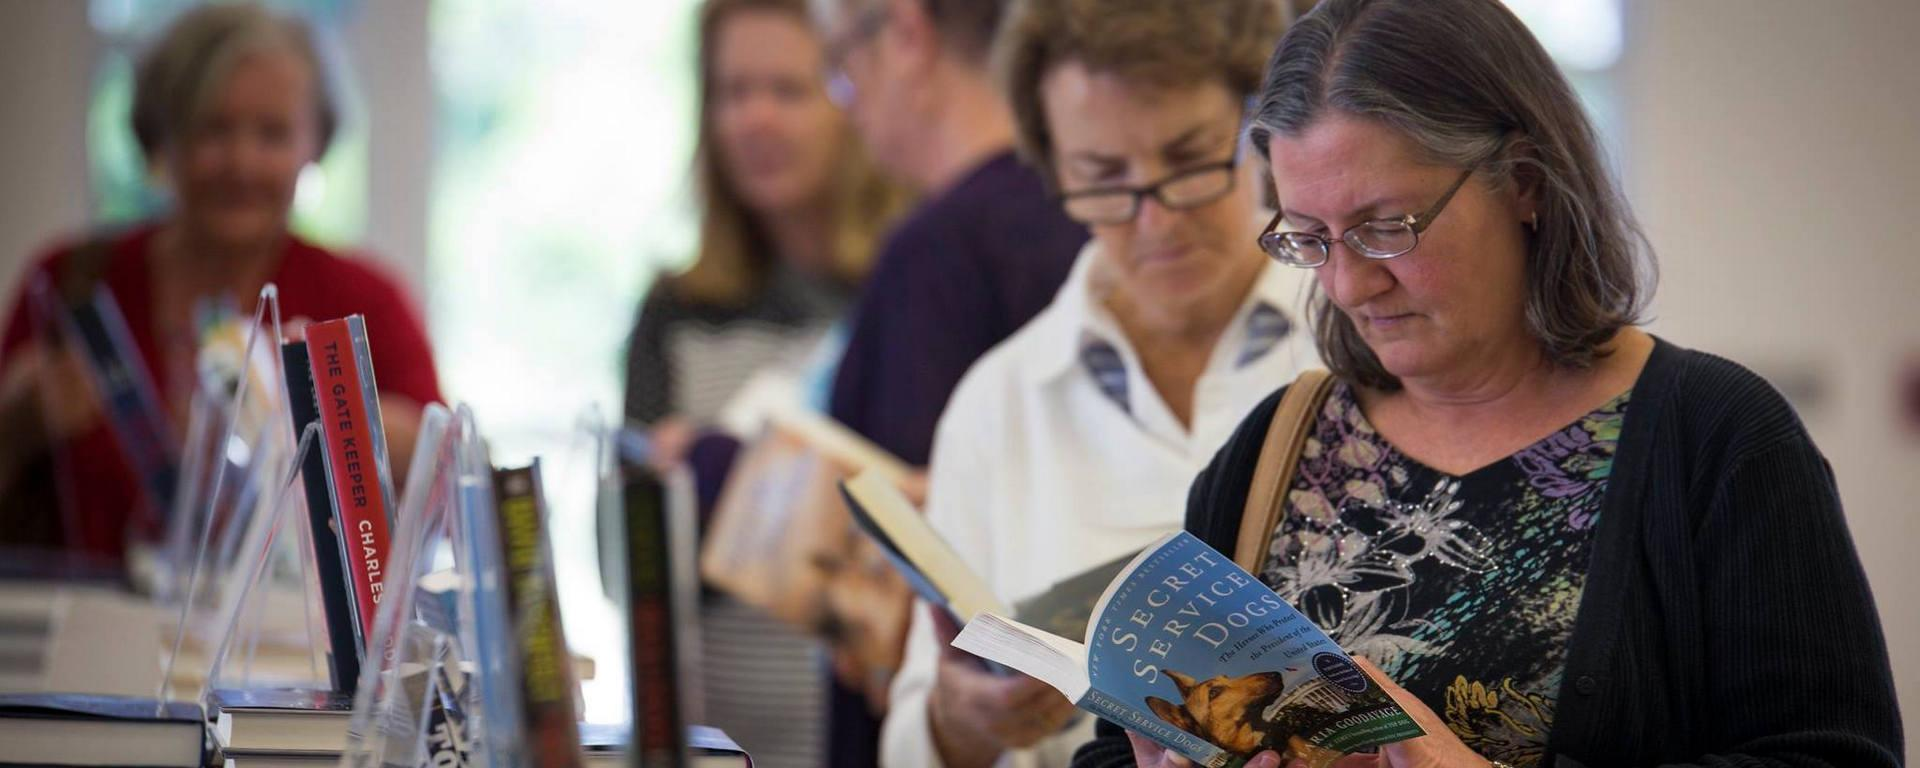 readers in line at the book sale